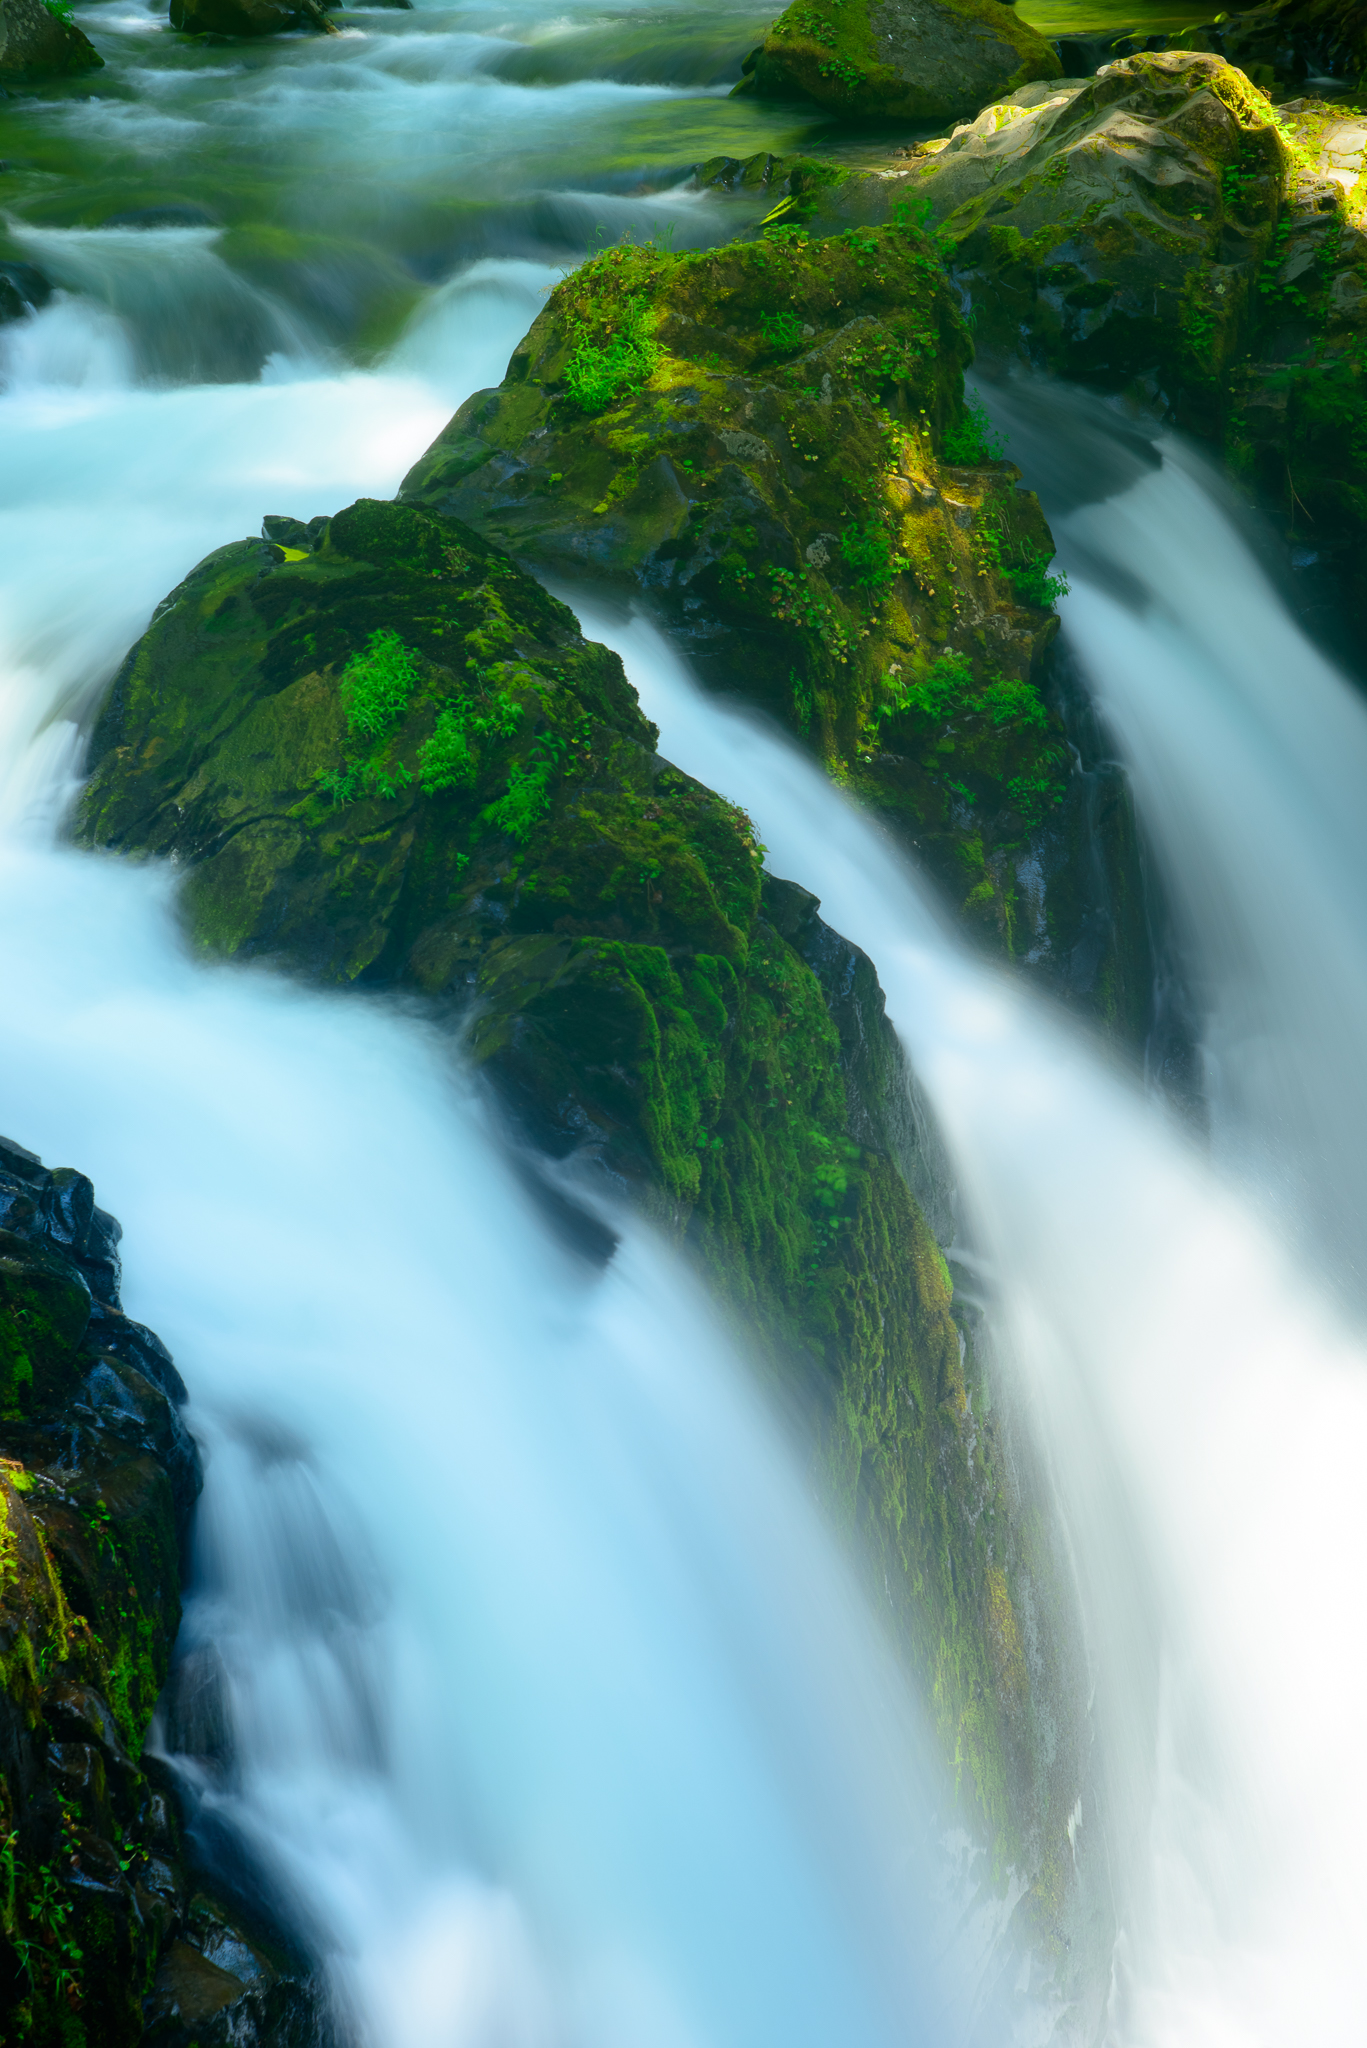 An intimate view of the poplular Sol Duc Falls in Olynpic Nationak Park, WA.